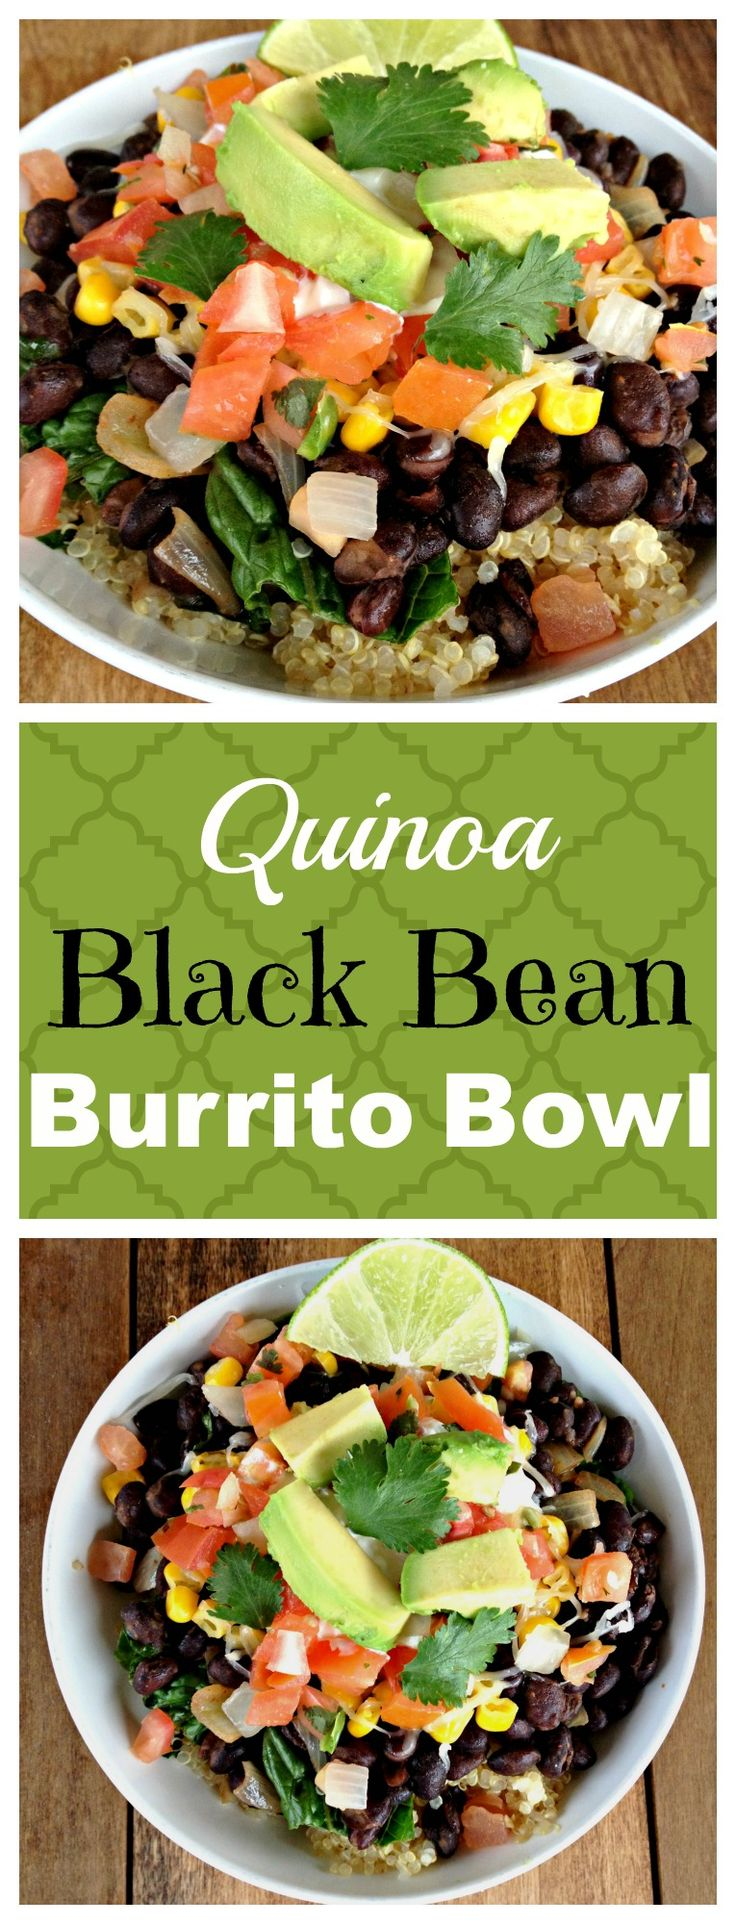 The quinoa and black beans are seasoned just right! This is so healthy and such a crowd pleaser!